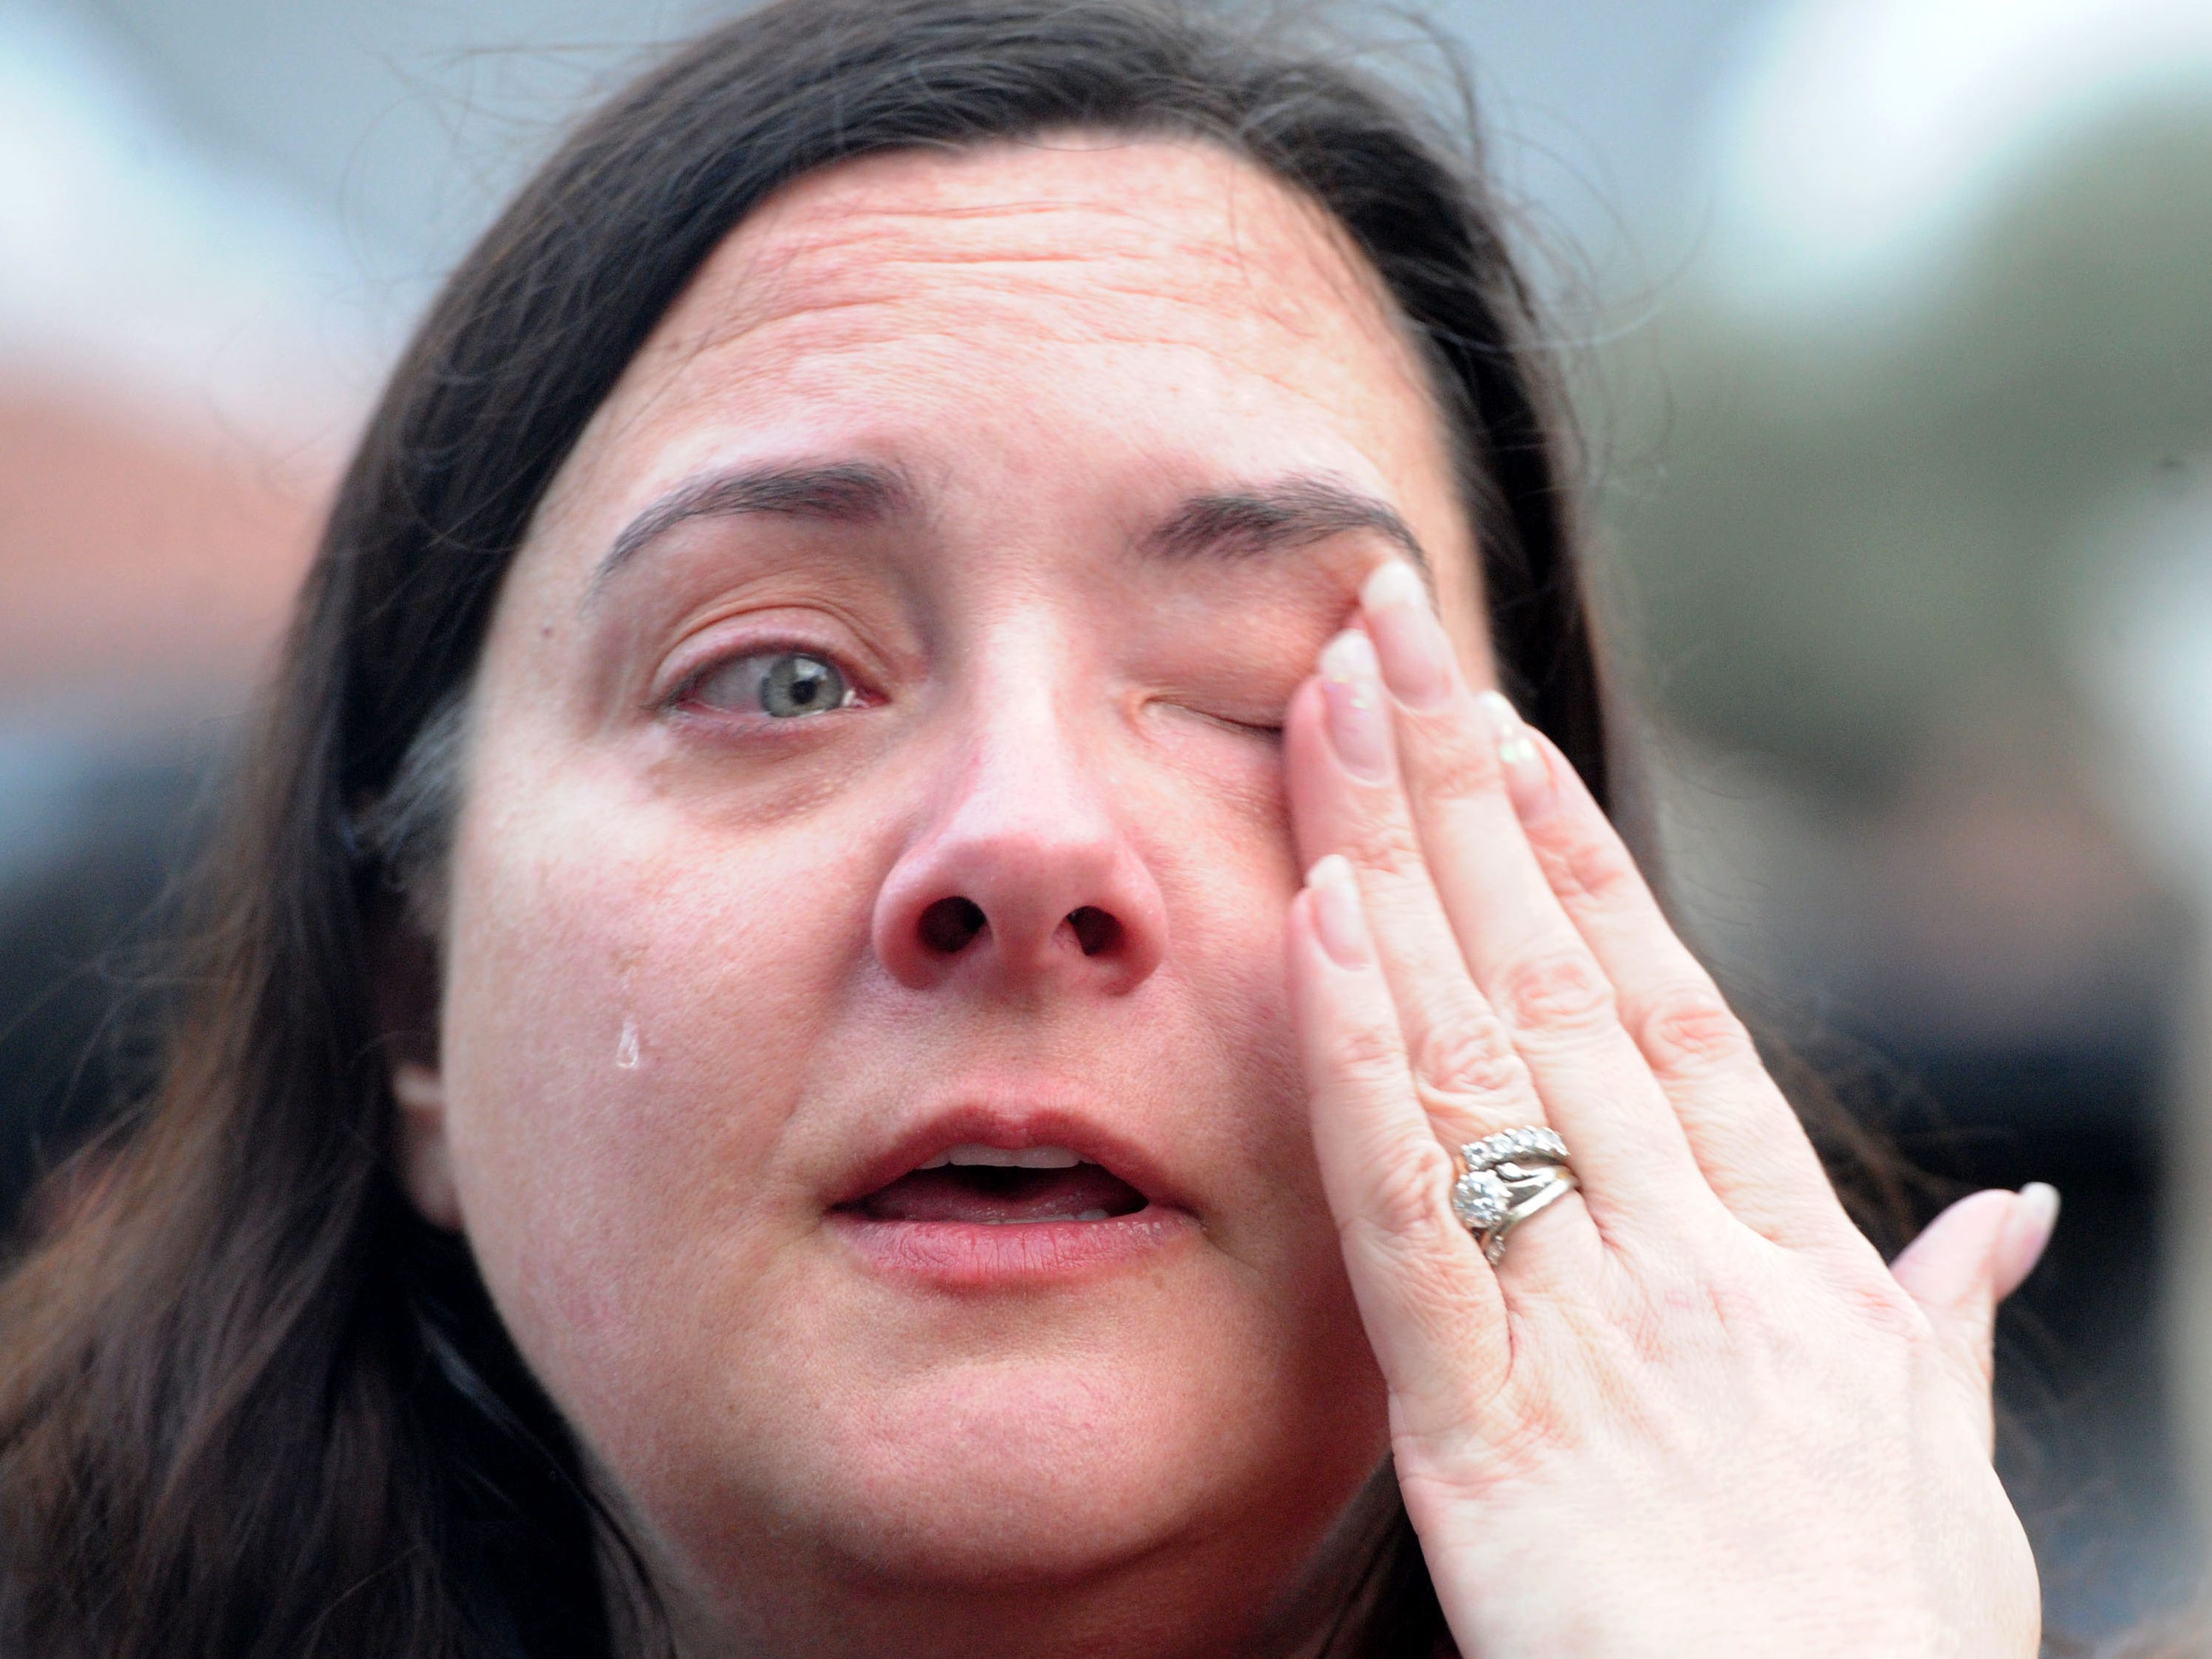 Sarah Silikula 44, cries and expresses concern for her daughter's friend after the shooting at the Borderline Bar & Grill Wednesday night in Thousand Oaks. The gunman, identified as Ian David Long, 28 of Newbury Park, killed 12 people before taking his own life.